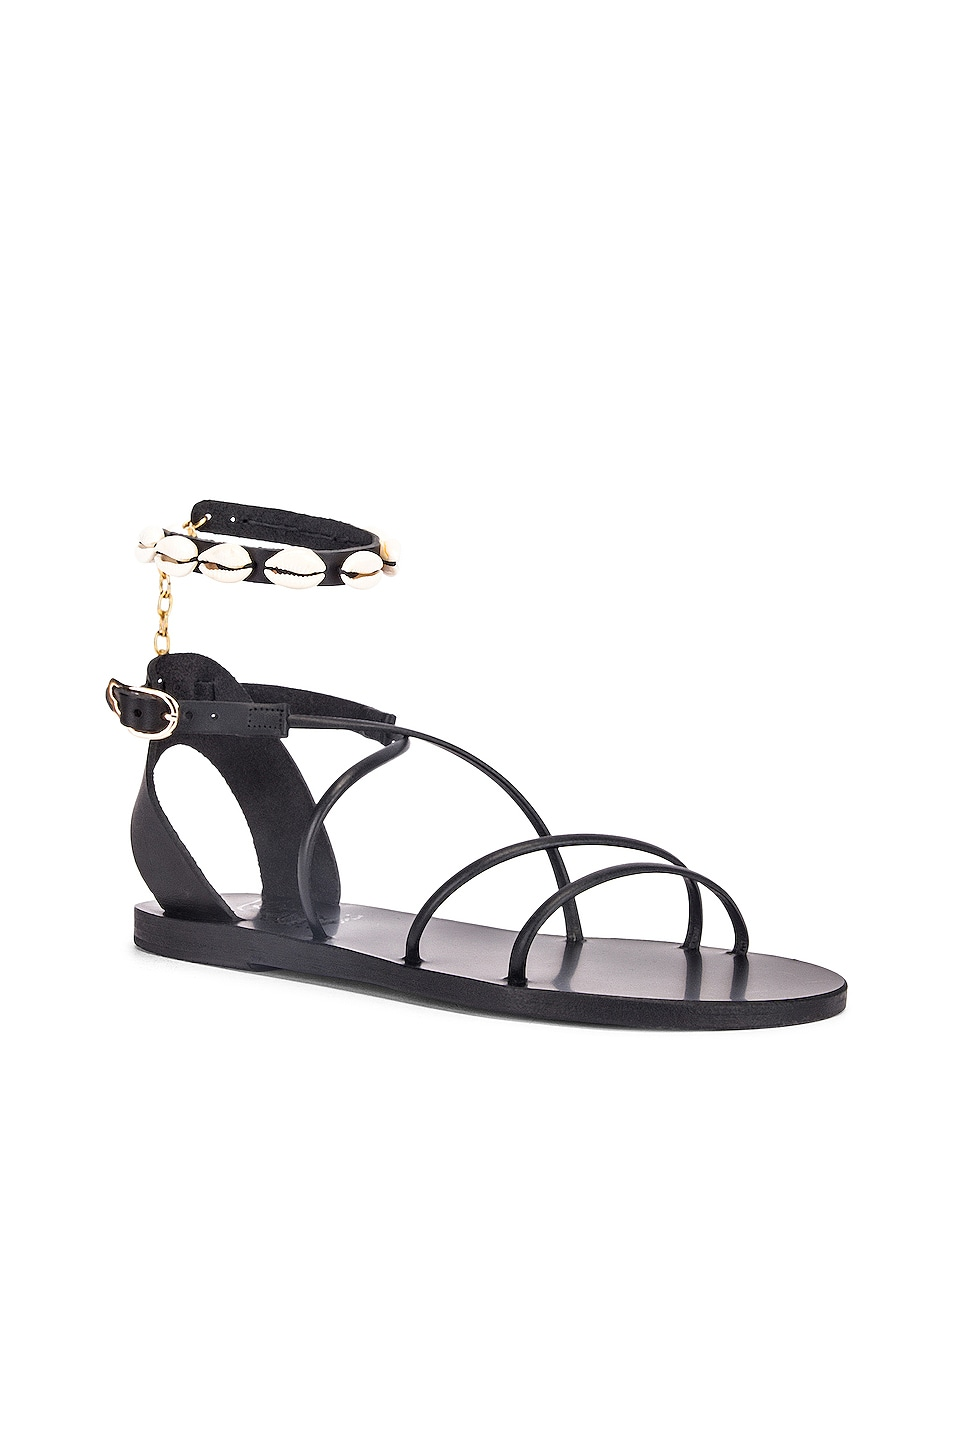 Image 2 of Ancient Greek Sandals Meloivia with Shells Sandals in Black